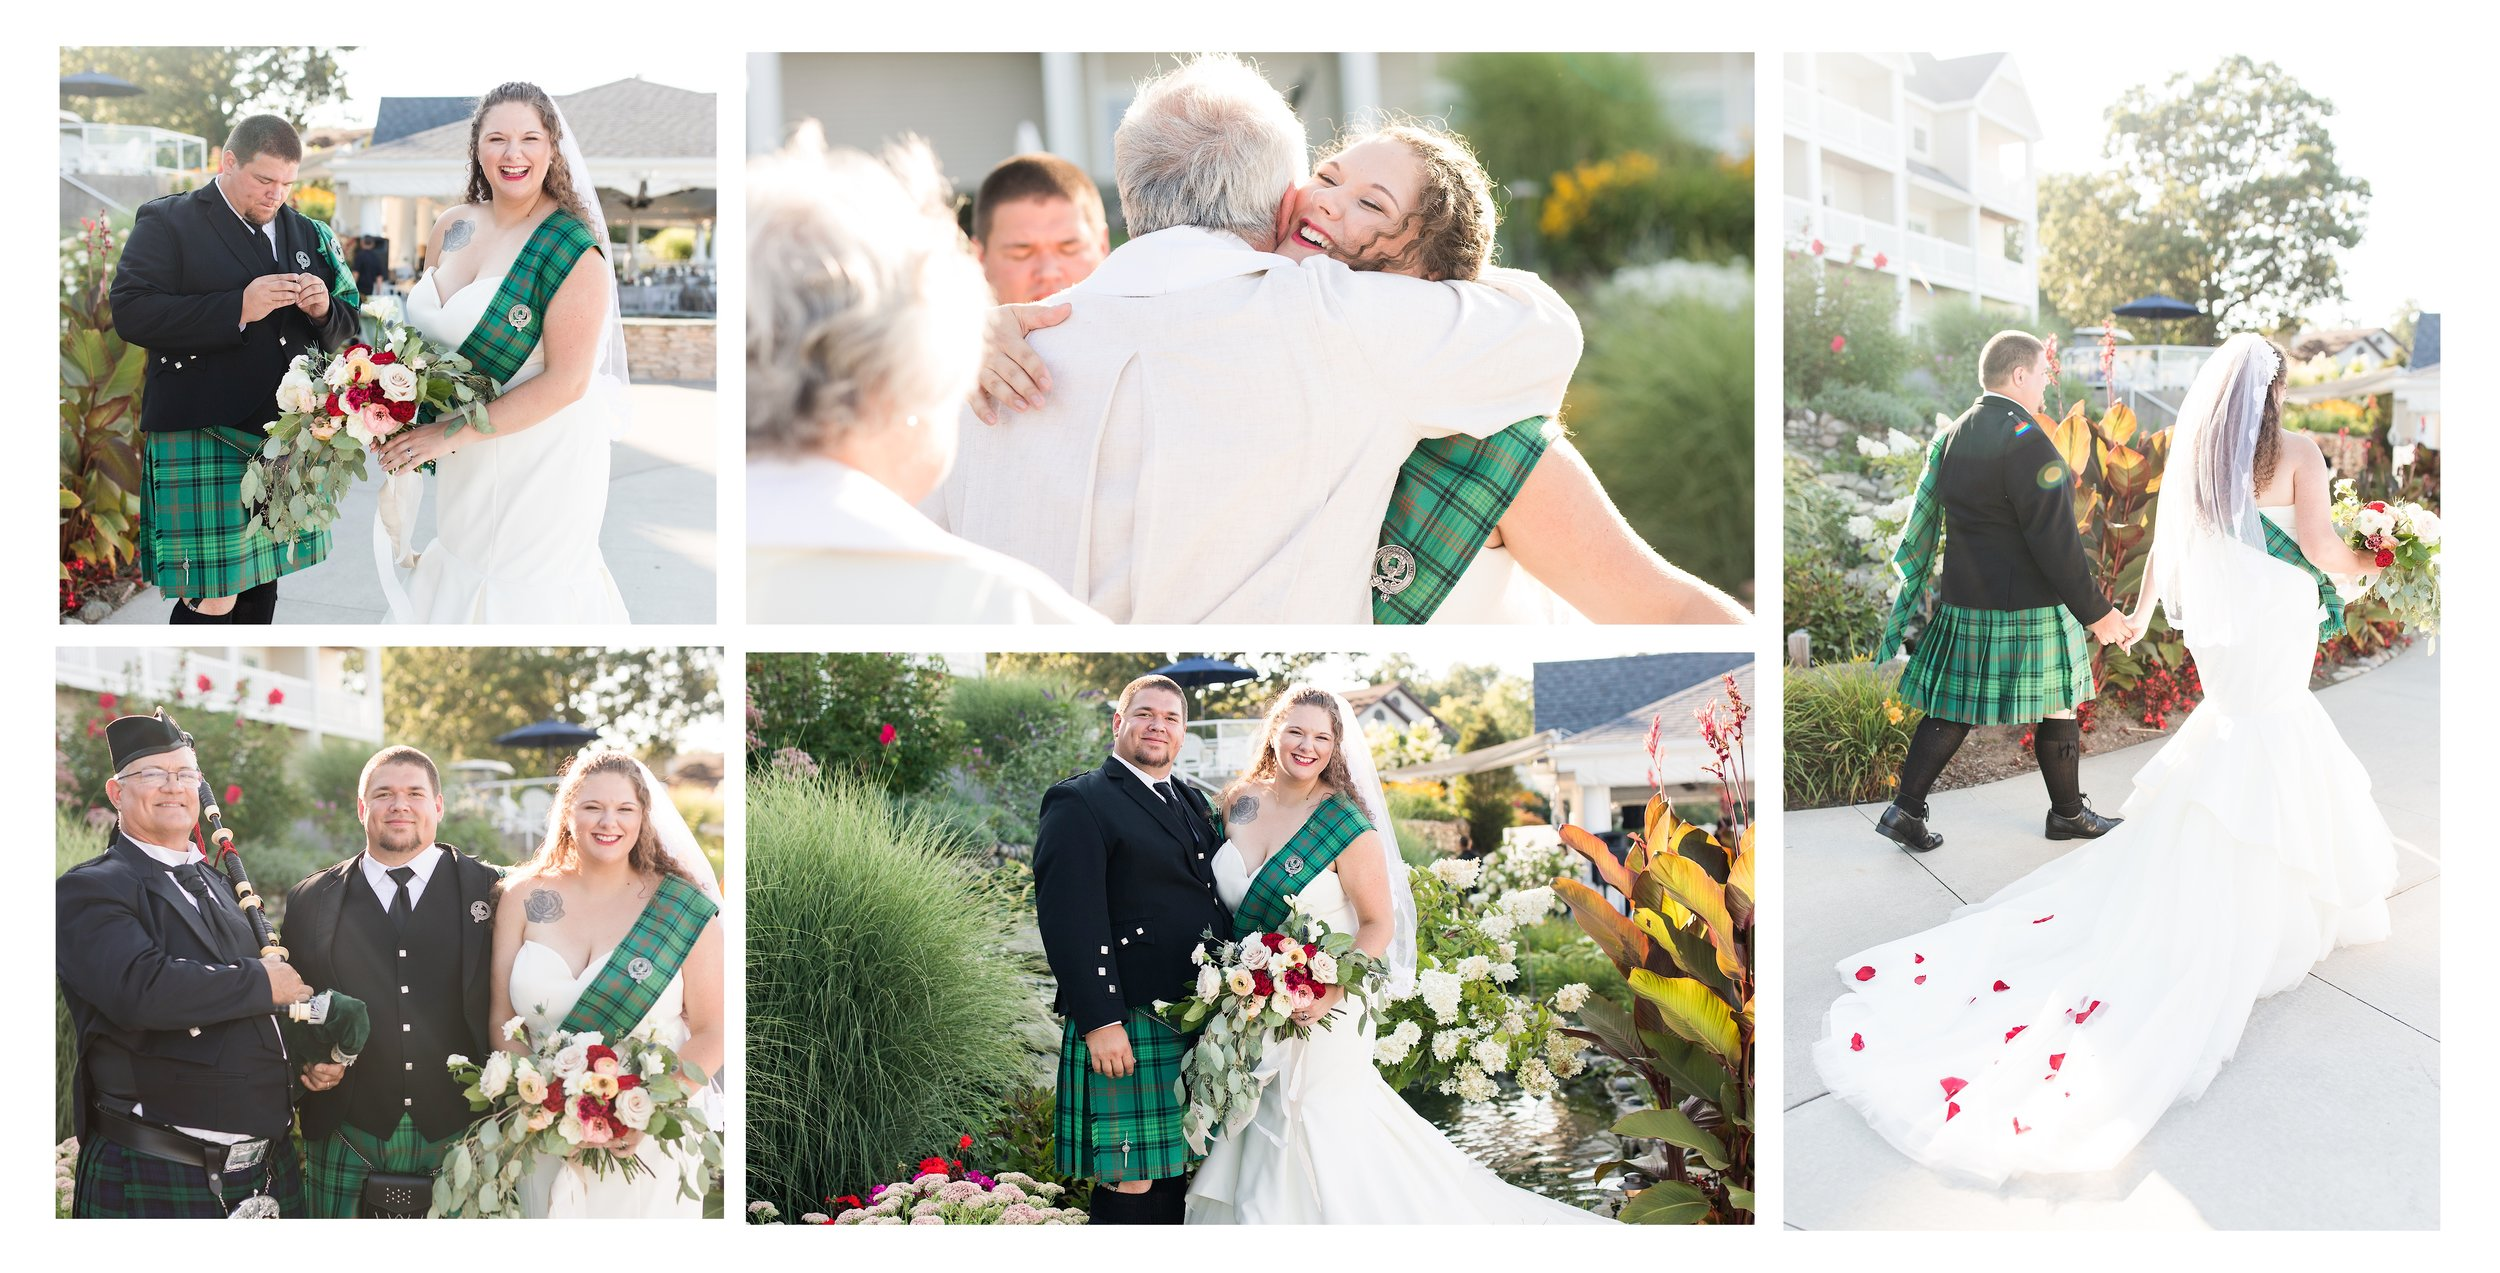 Our_Wedding_Album_12x12_-_30_pages_24.jpg